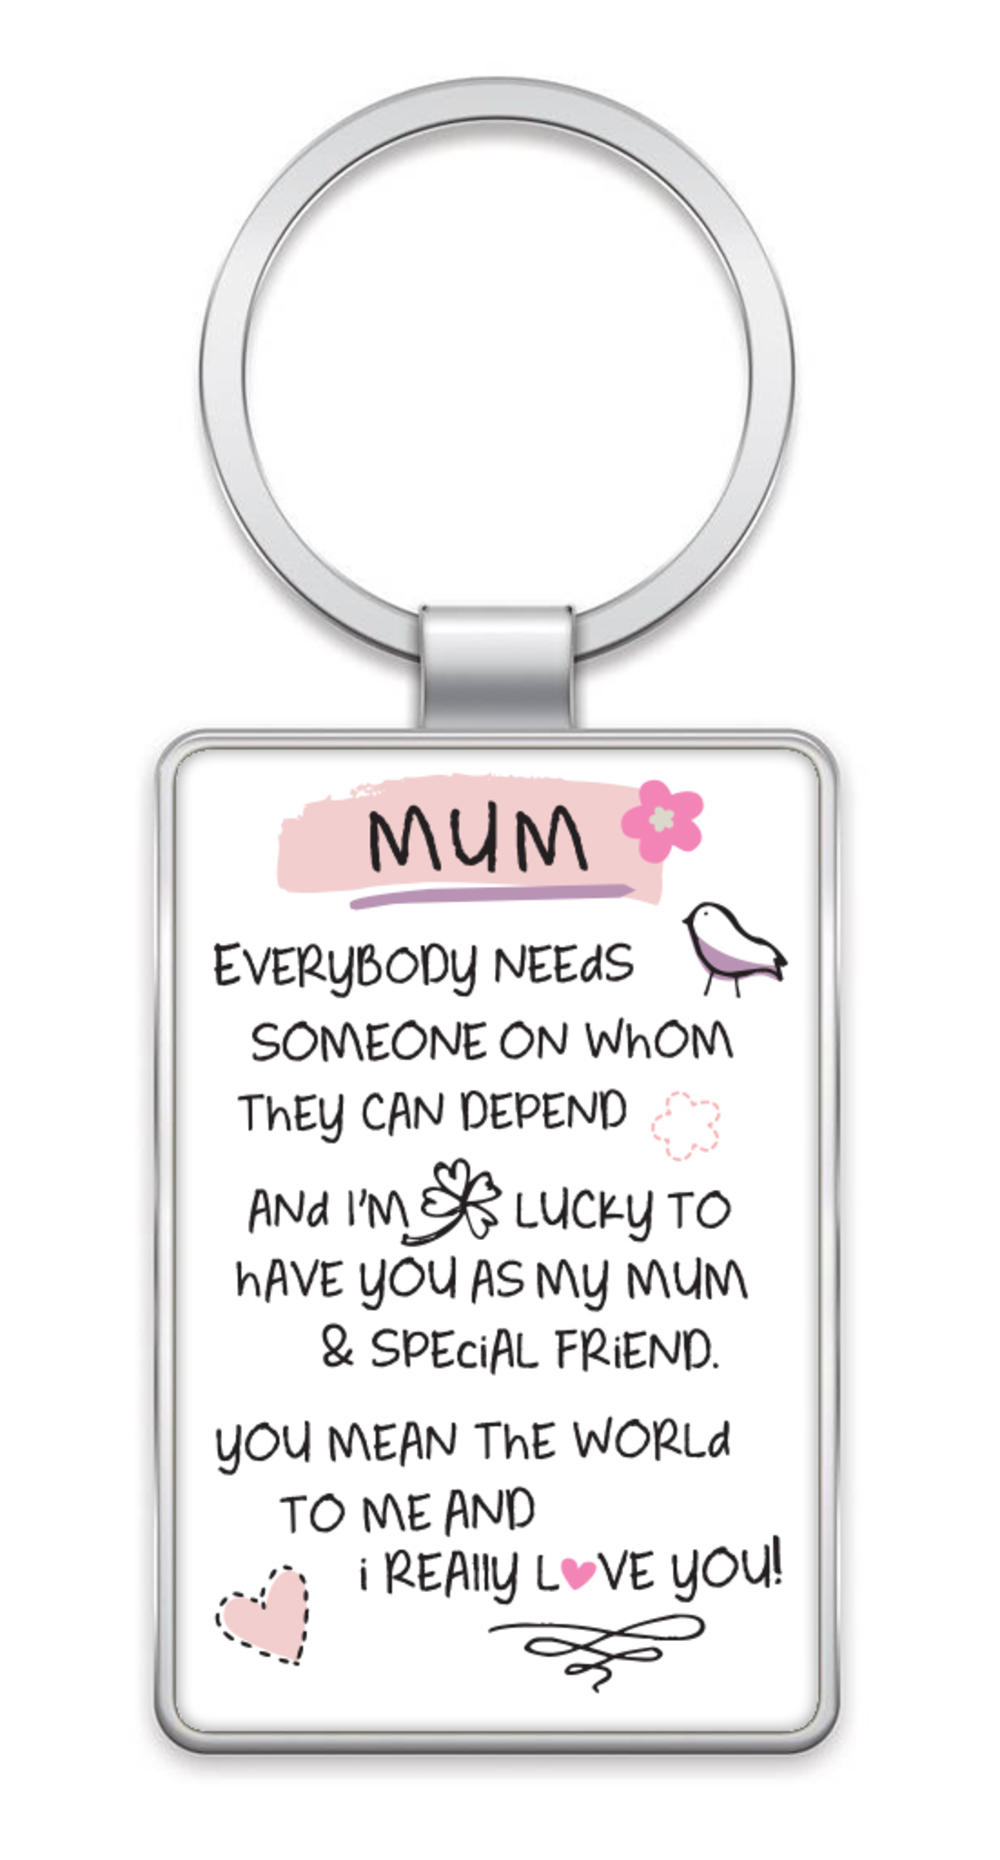 Mum I Love You Inspired Words Metal Keyring